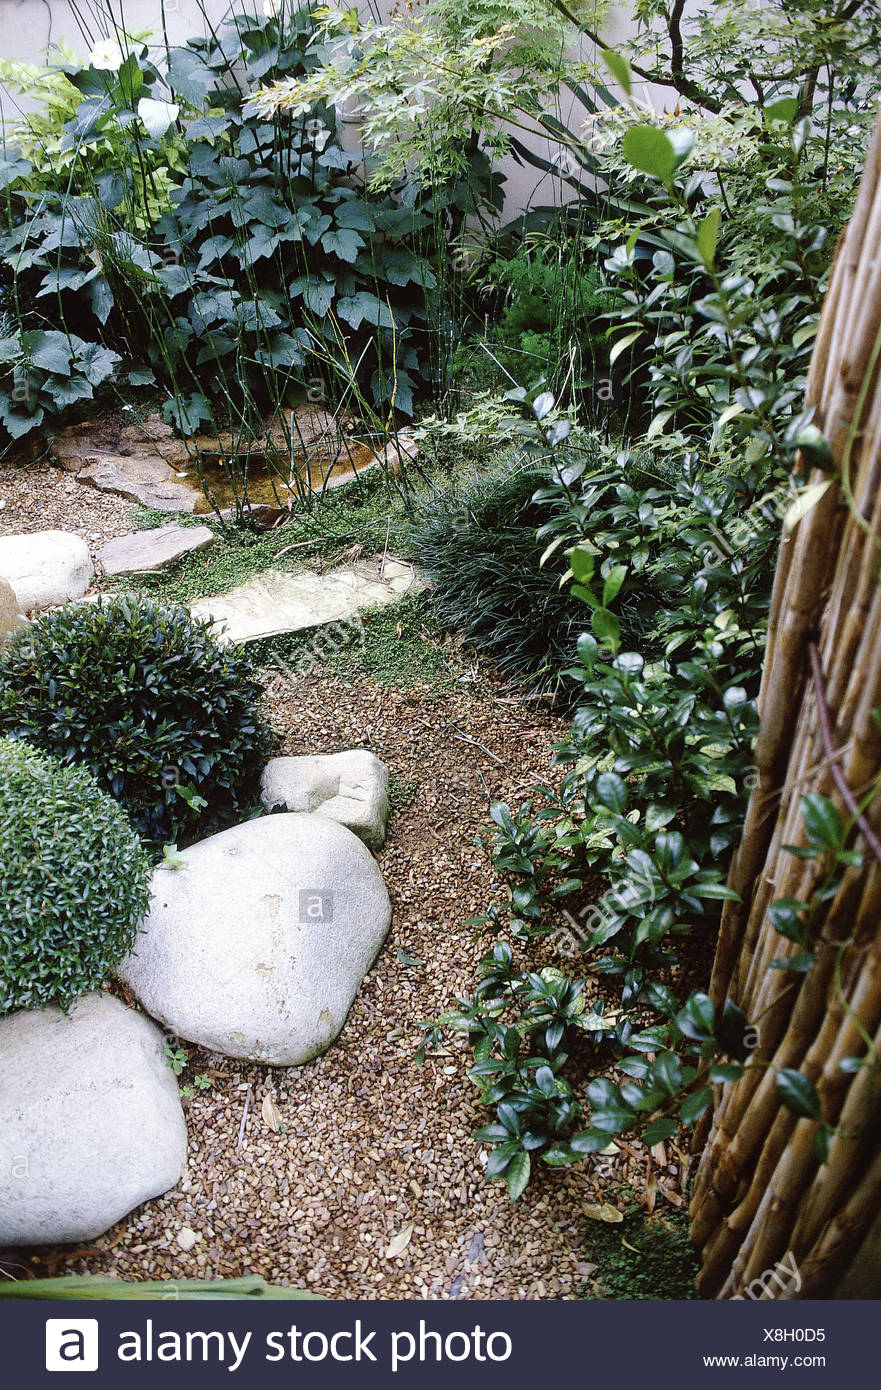 Small Gardens Garden Gravel Path, Two Round Shaped Bushes And White Rocks,  Small Pond, Green Plants Against White Wall And